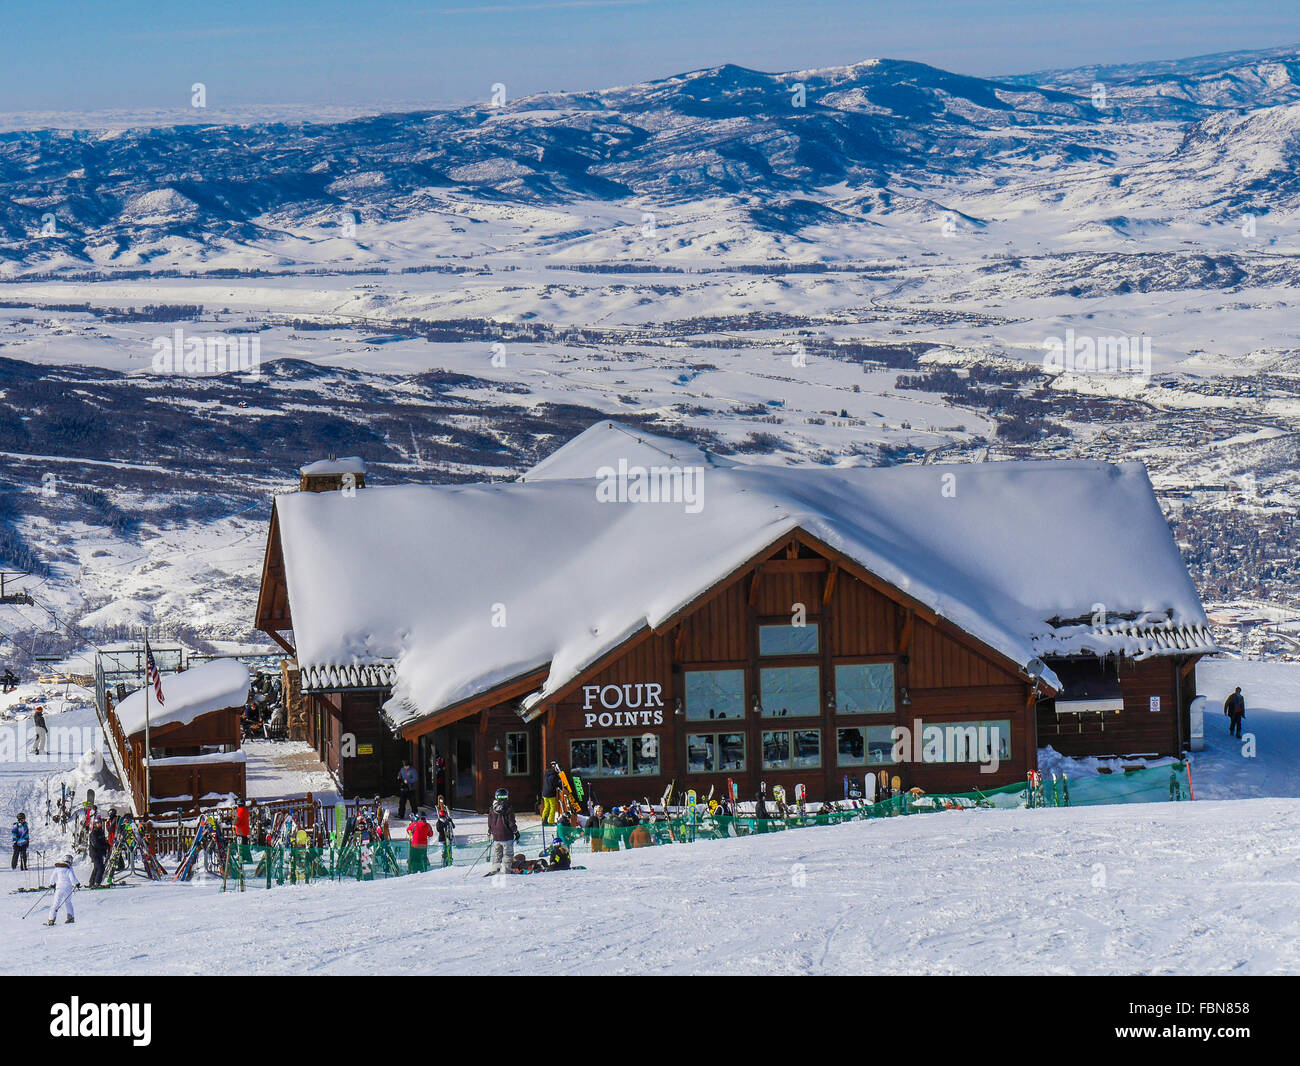 view of four points lodge, steamboat ski resort, steamboat springs